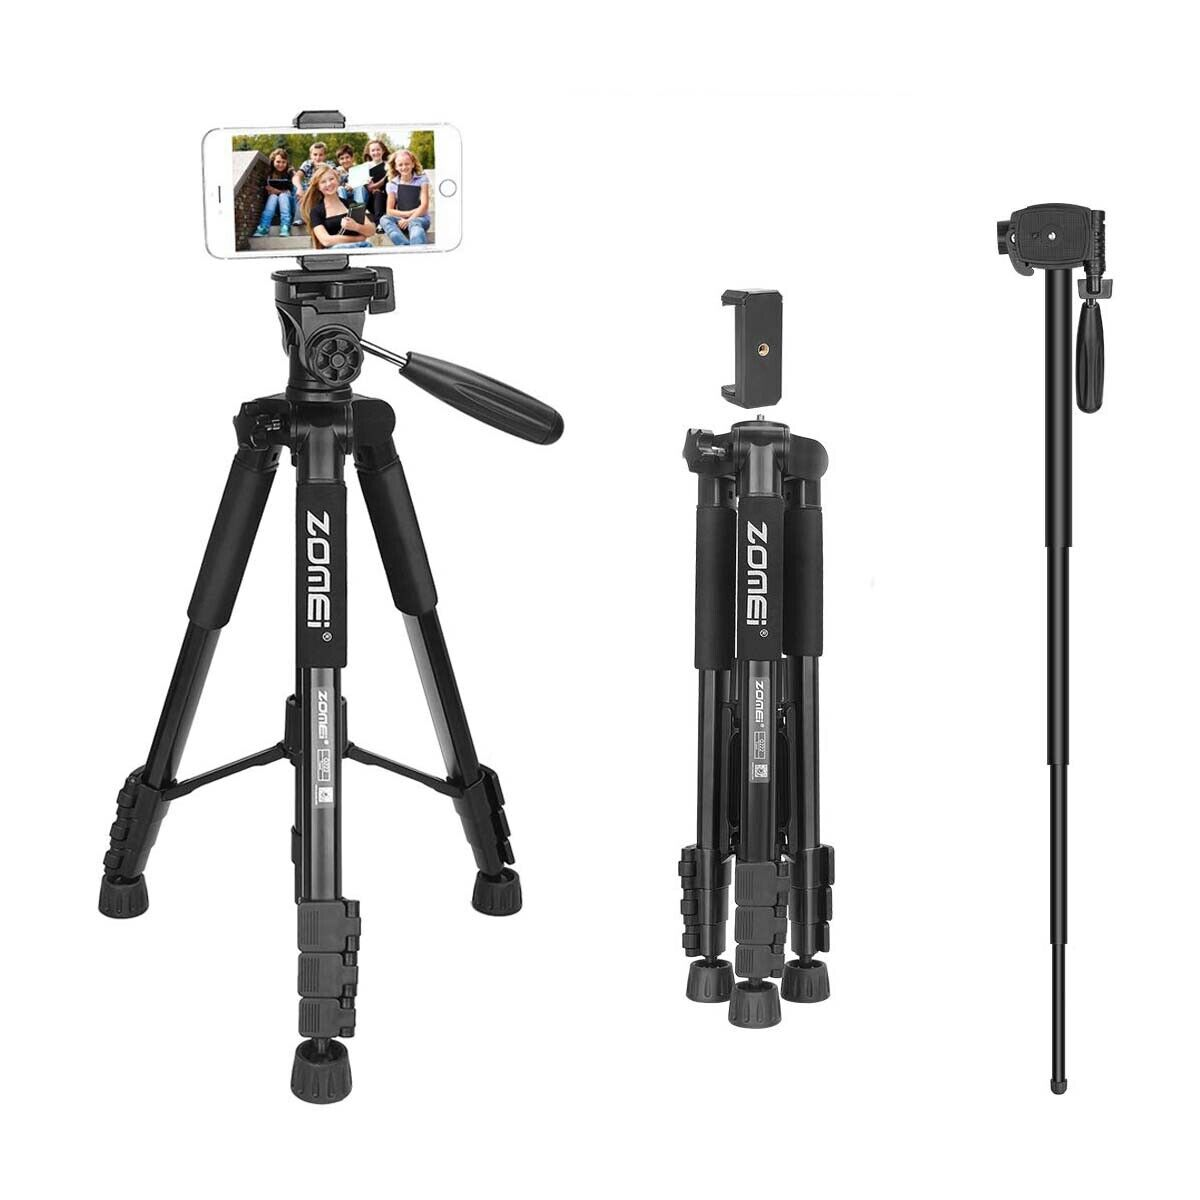 45b4422f2 ZOMEI Q222 Lightweight Aluminum Tripod Monopod Portable Travel Camera Stand  with 3-Way Pan Head and Carry Bag for Canon Nikon